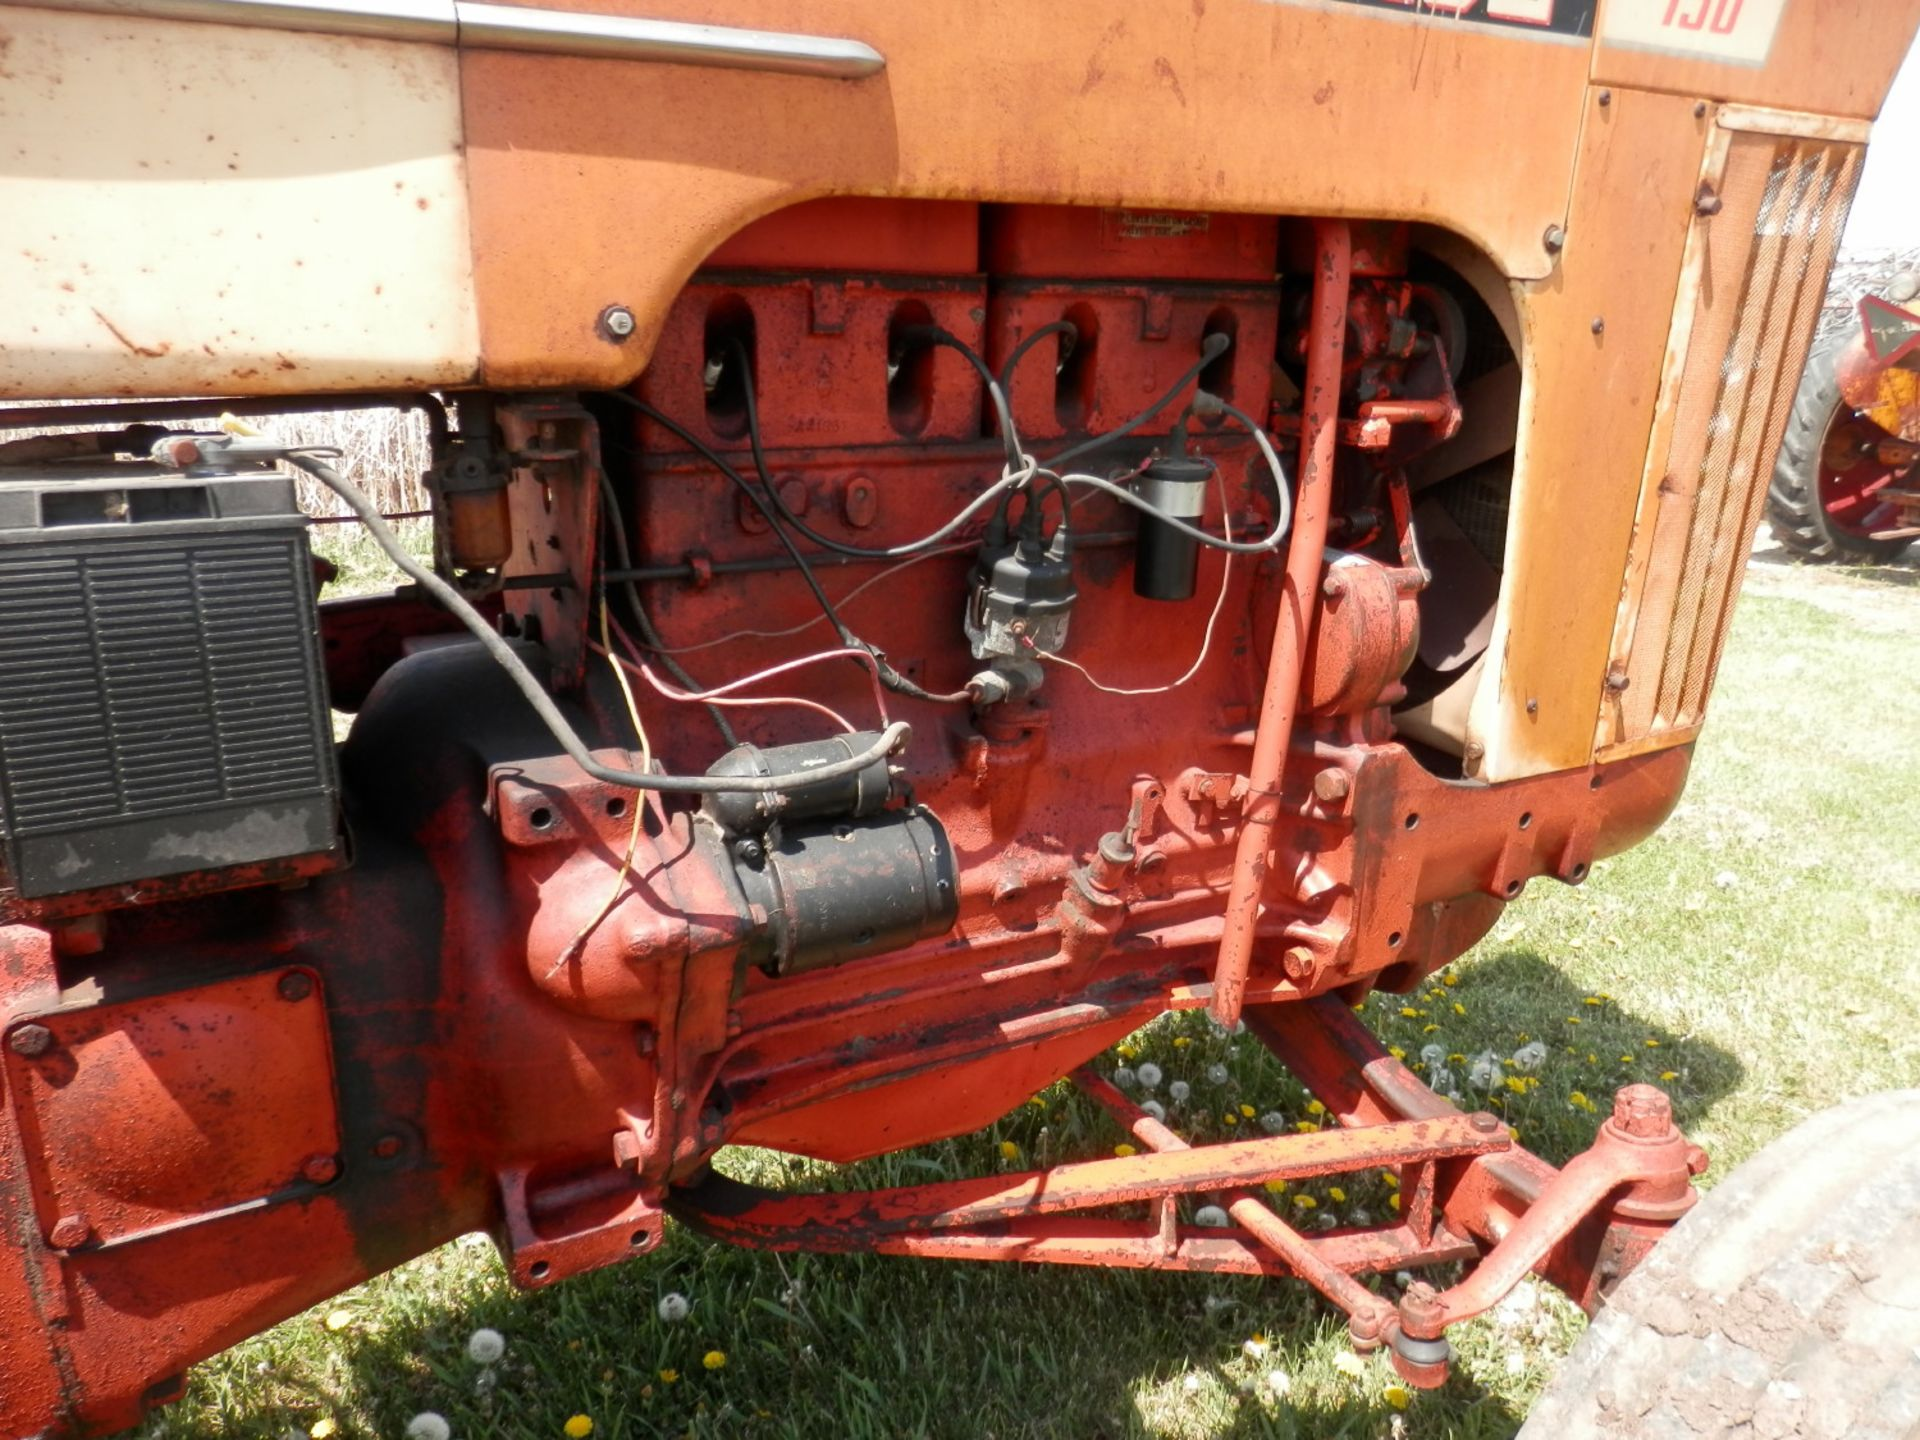 JI CASE 730 GAS TRACTOR - Image 10 of 10